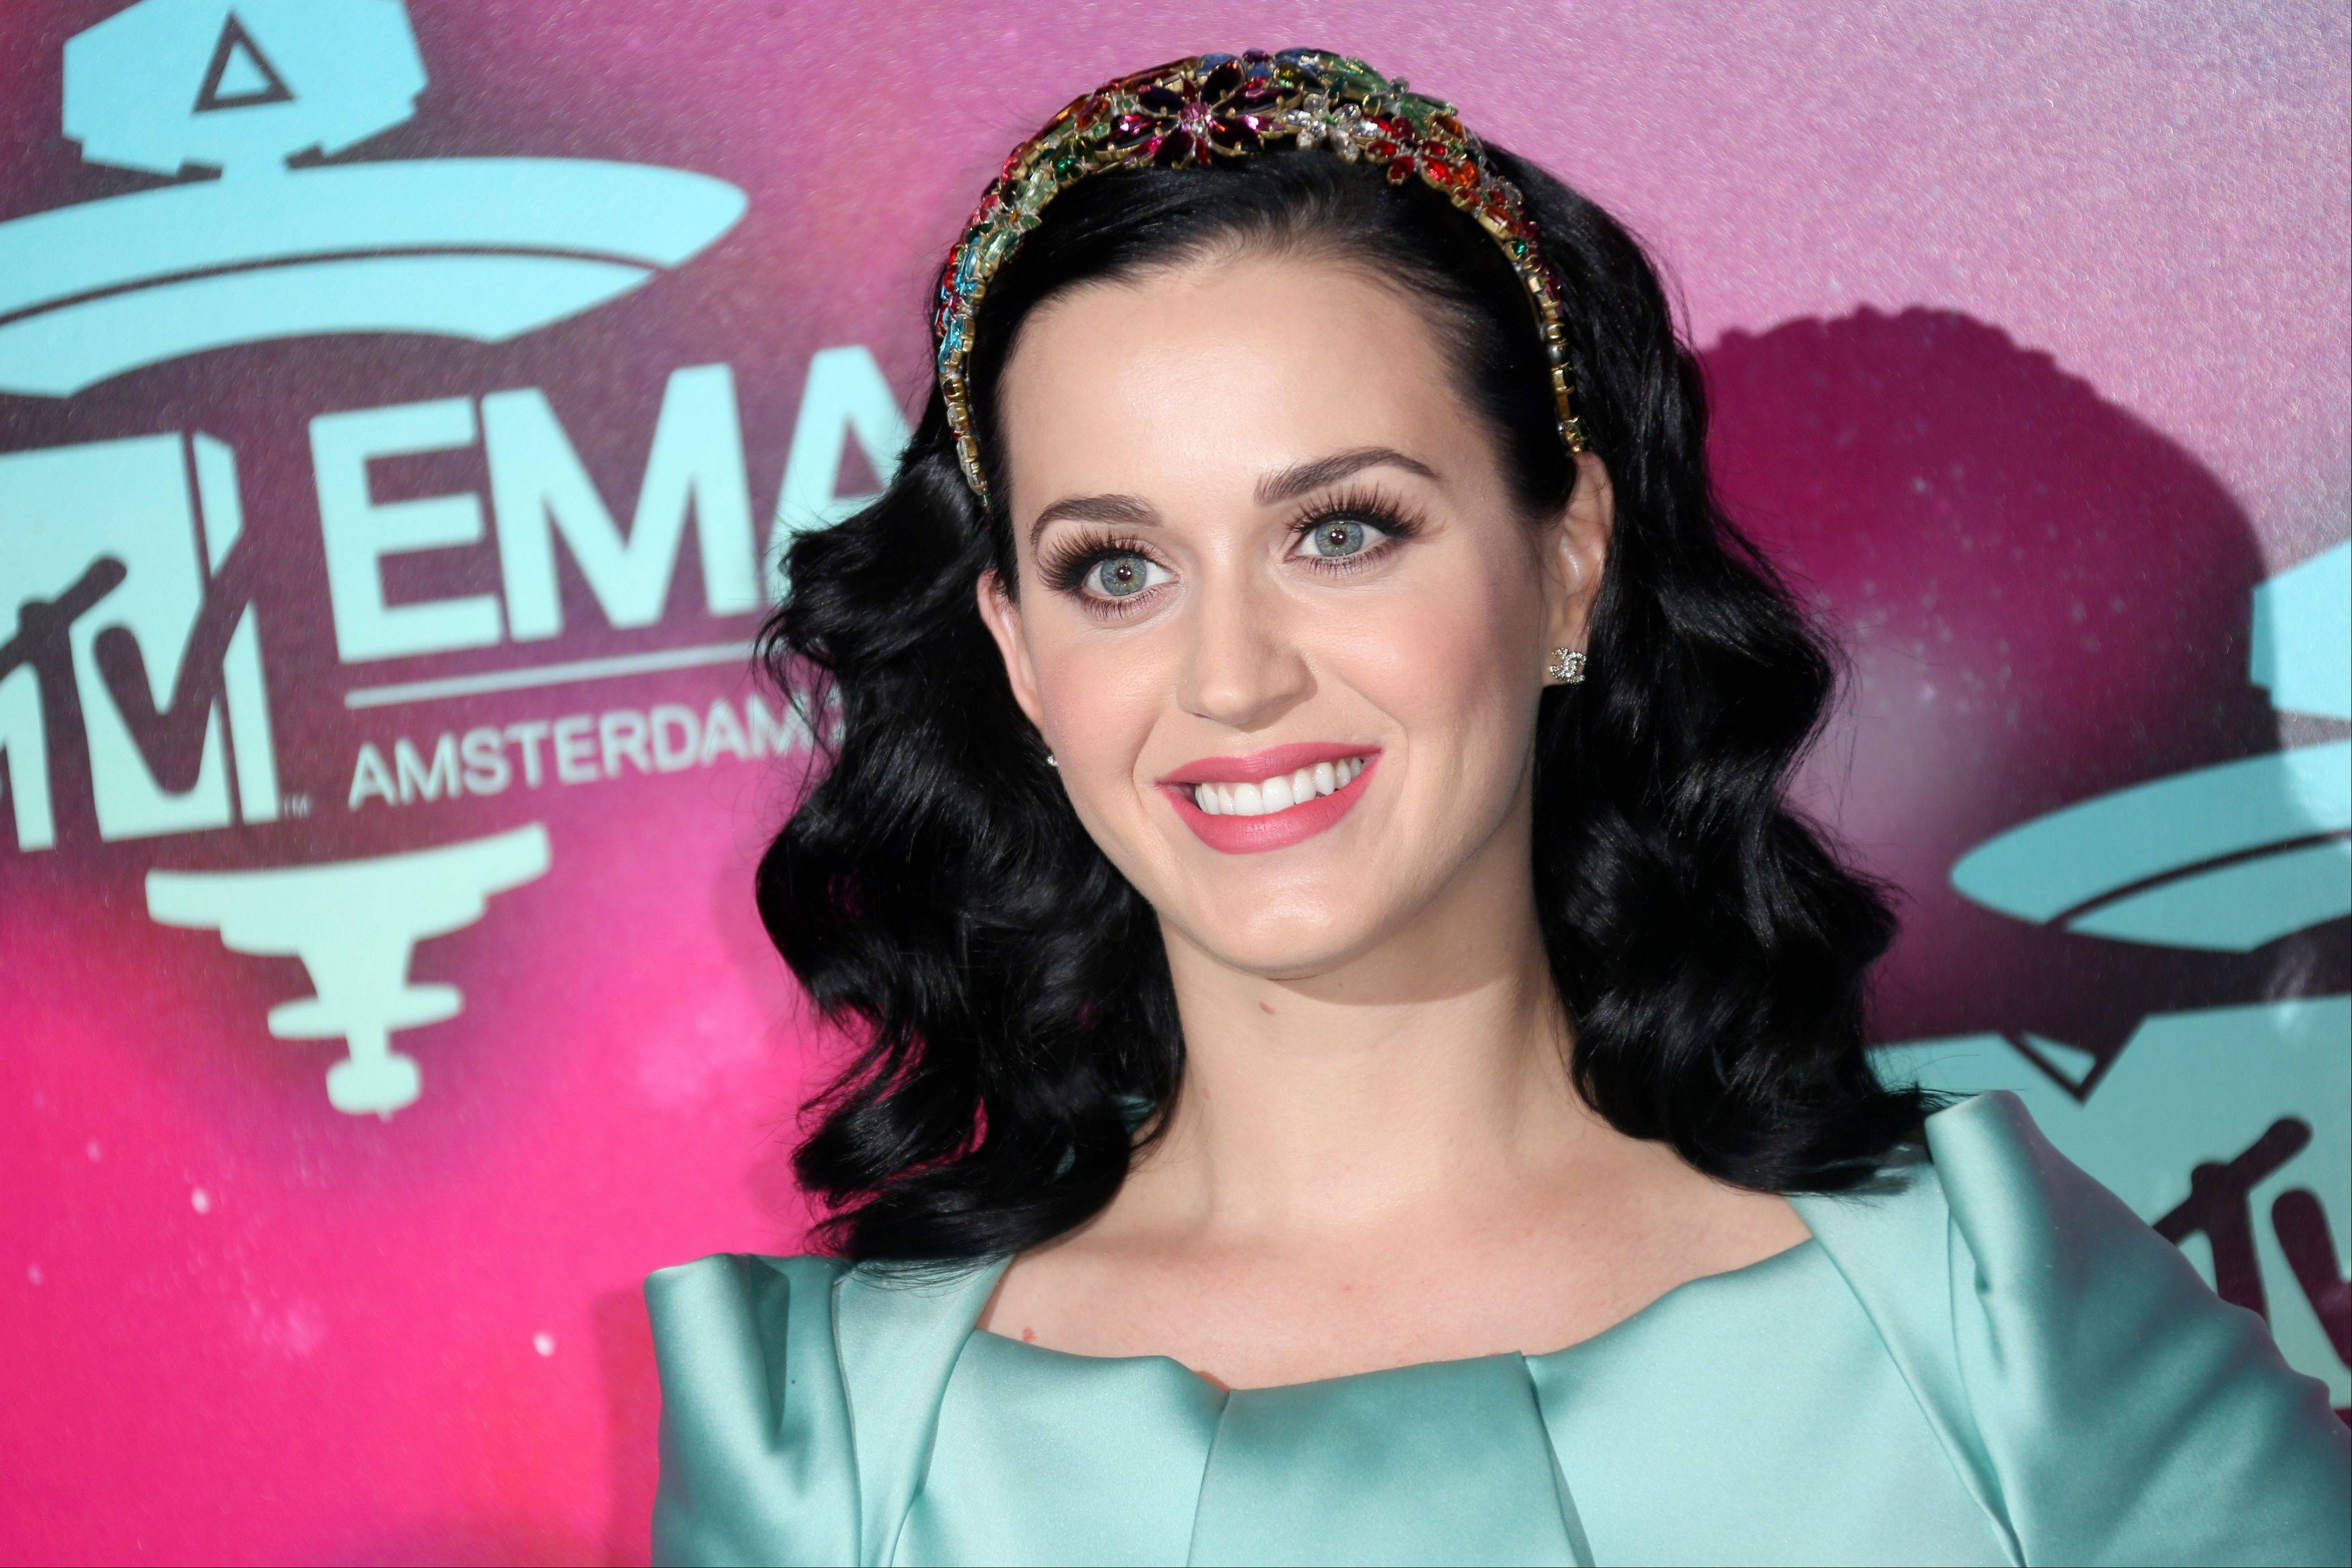 Katy Perry will kick off the Nov. 24 American Music Awards with a performance of her new single �Unconditionally.�